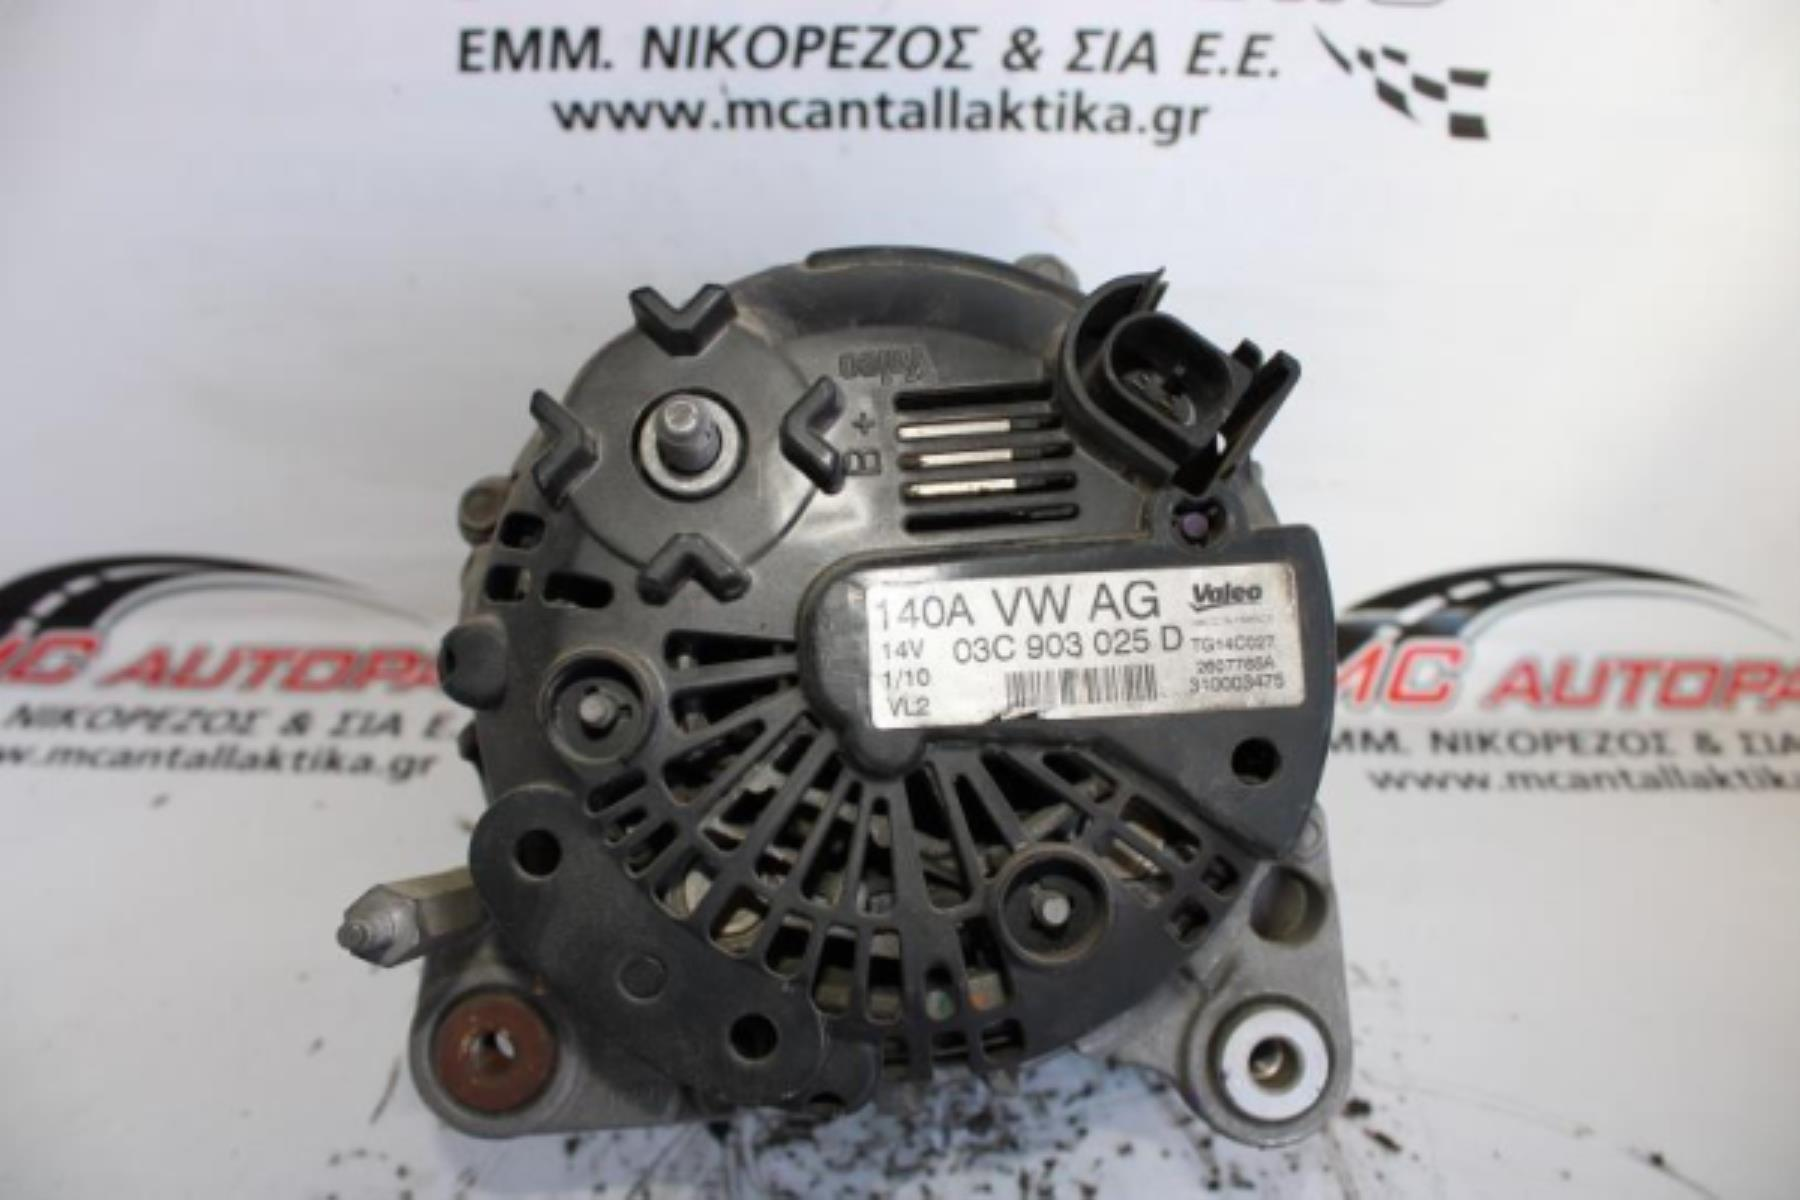 Picture of Δυναμό  VW GOLF 5 (2004-2008)  03C903025D   140A καστάνια